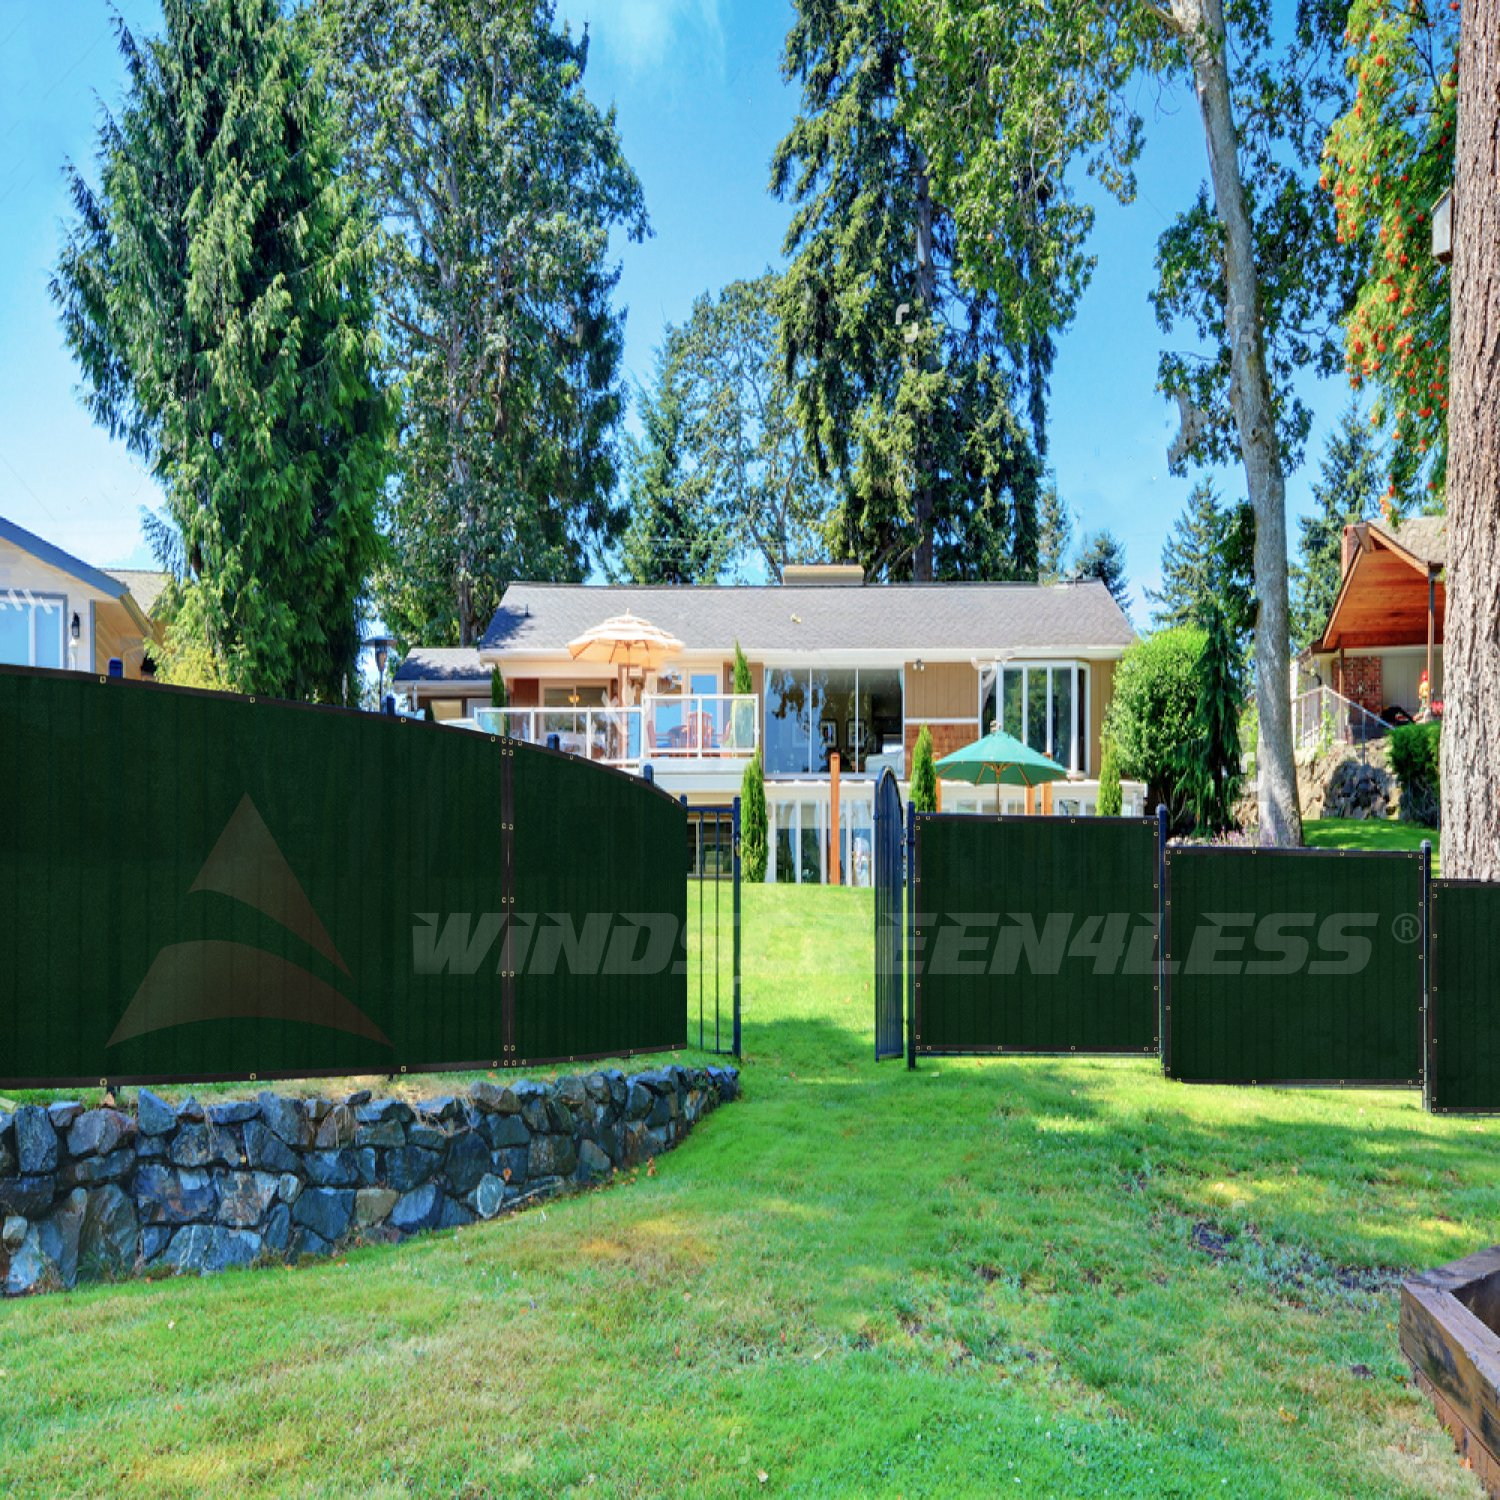 Windscreen4less Heavy Duty Privacy Screen Fence in Color Solid Green 4' x 50' Brass Grommets w/3-Year Warranty 150 GSM (Customized Sizes Available) by Windscreen4less (Image #8)